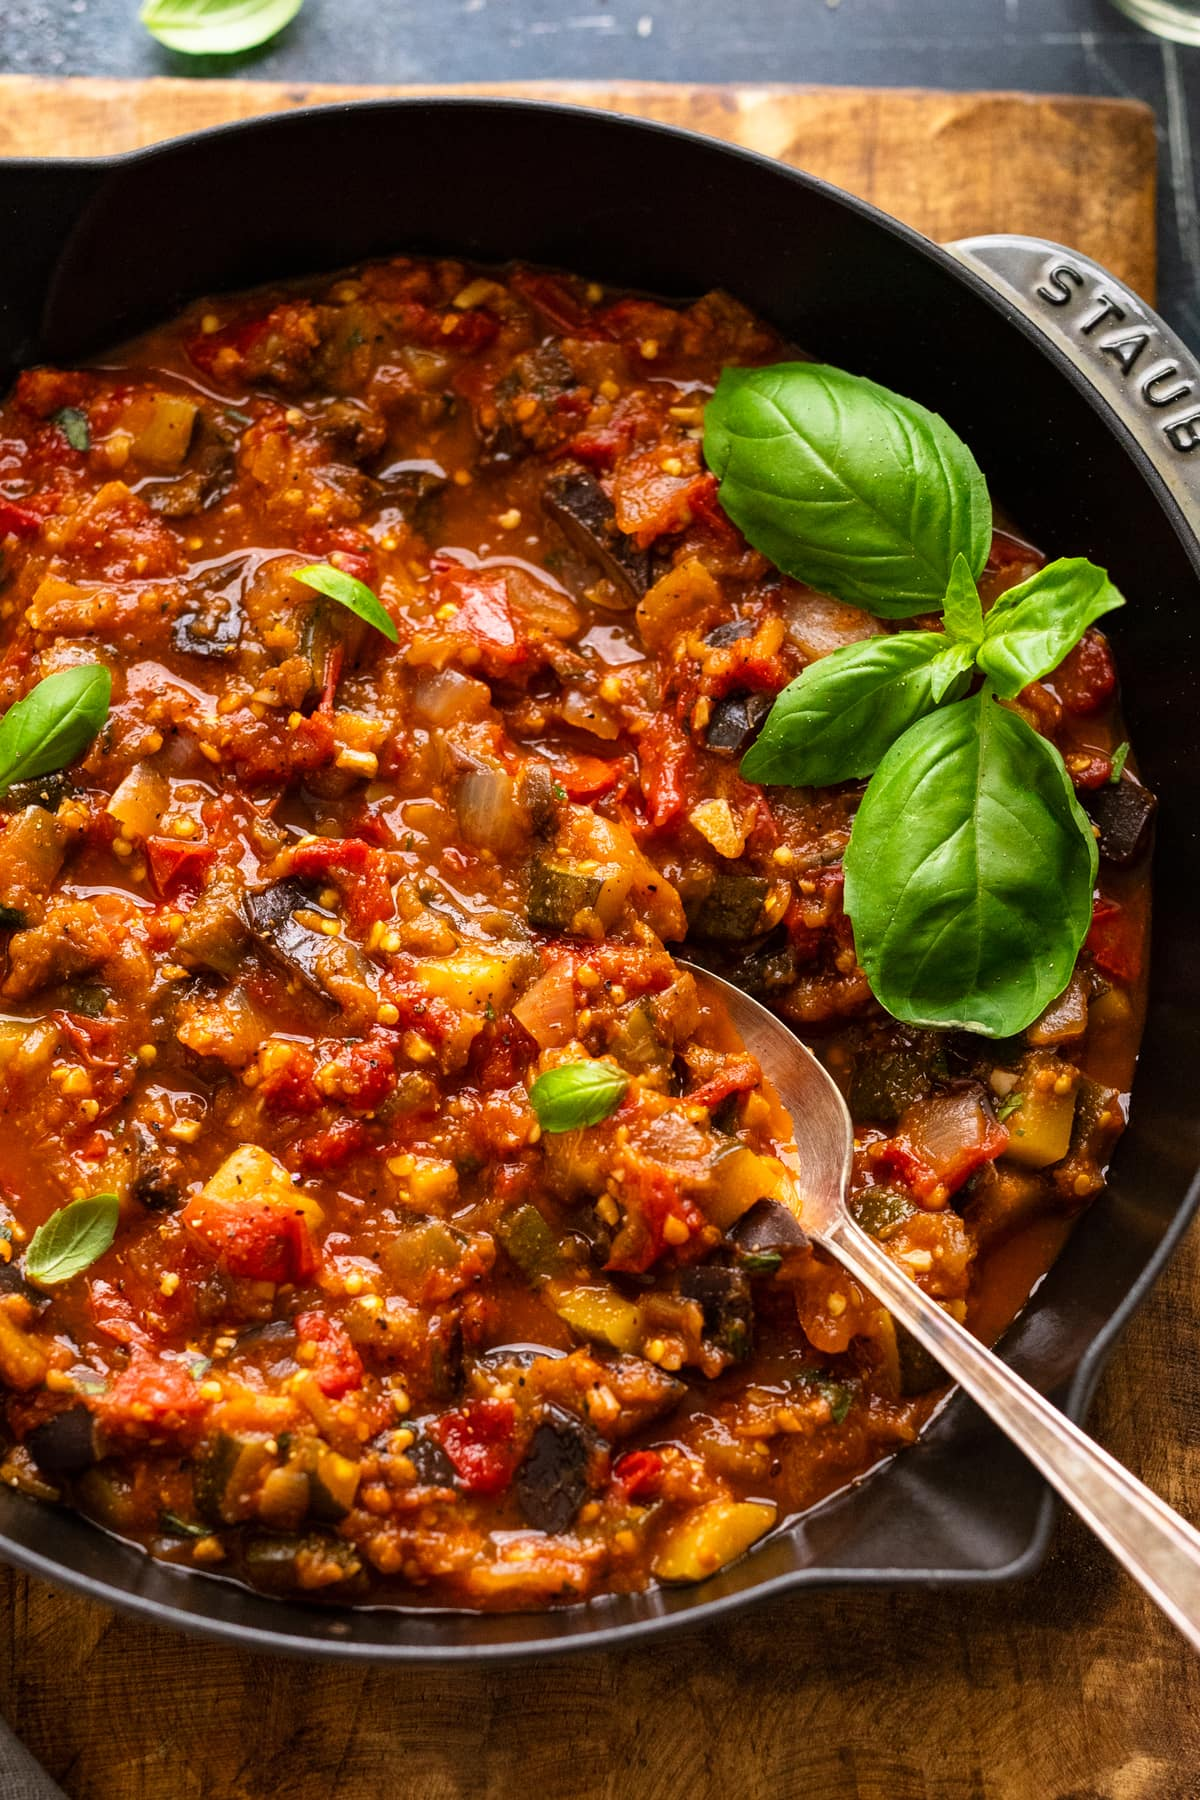 A cast iron pan with eggplant ratatouille in it. The stew is topped with fresh herbs with a spoon in it.